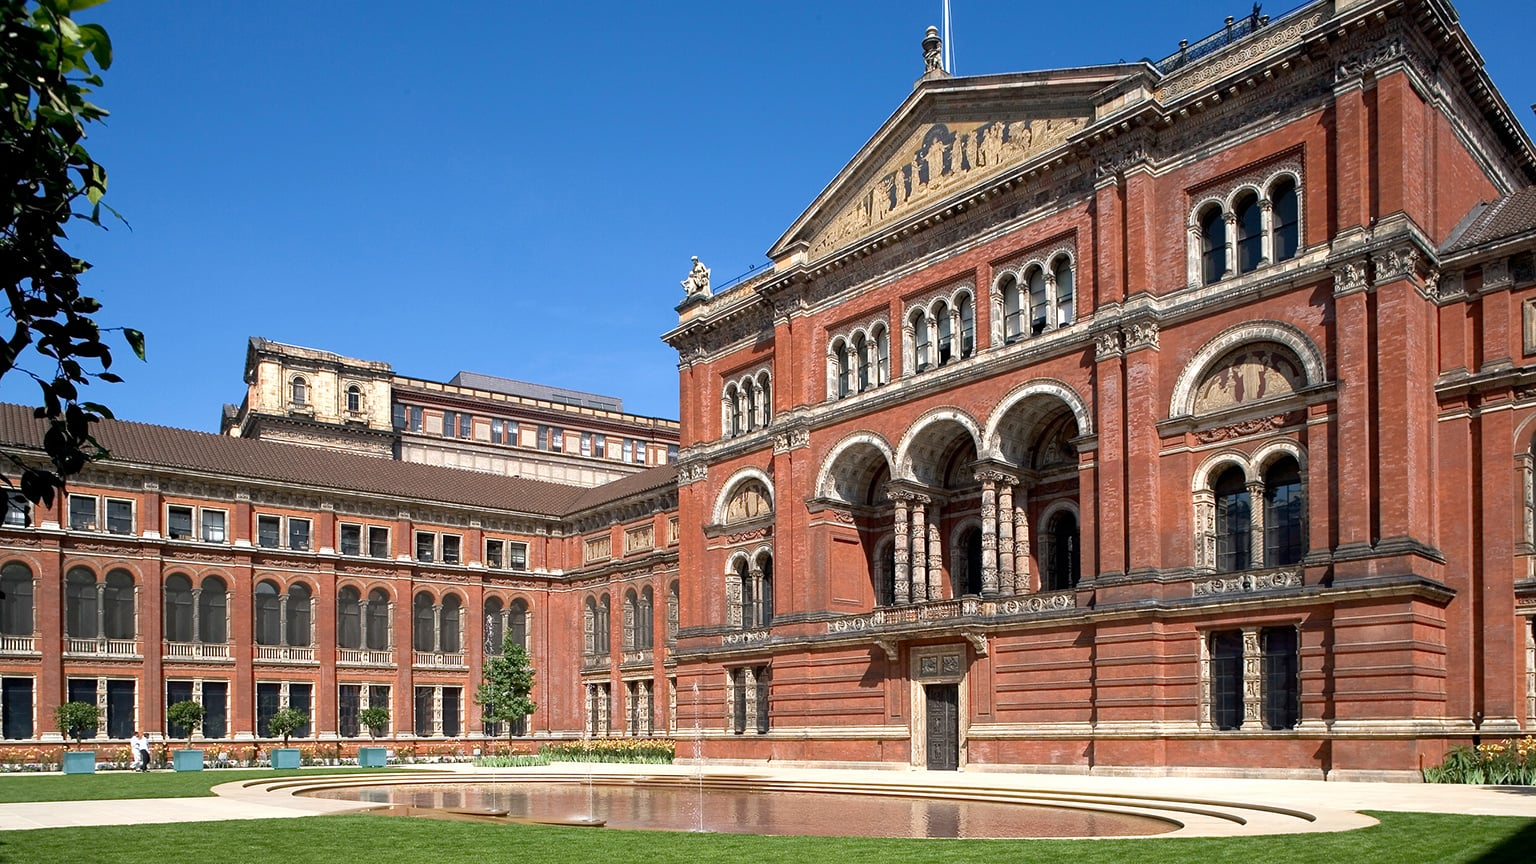 1. Victoria and Albert Museum, London - 50% off exhibitions with National Art Pass